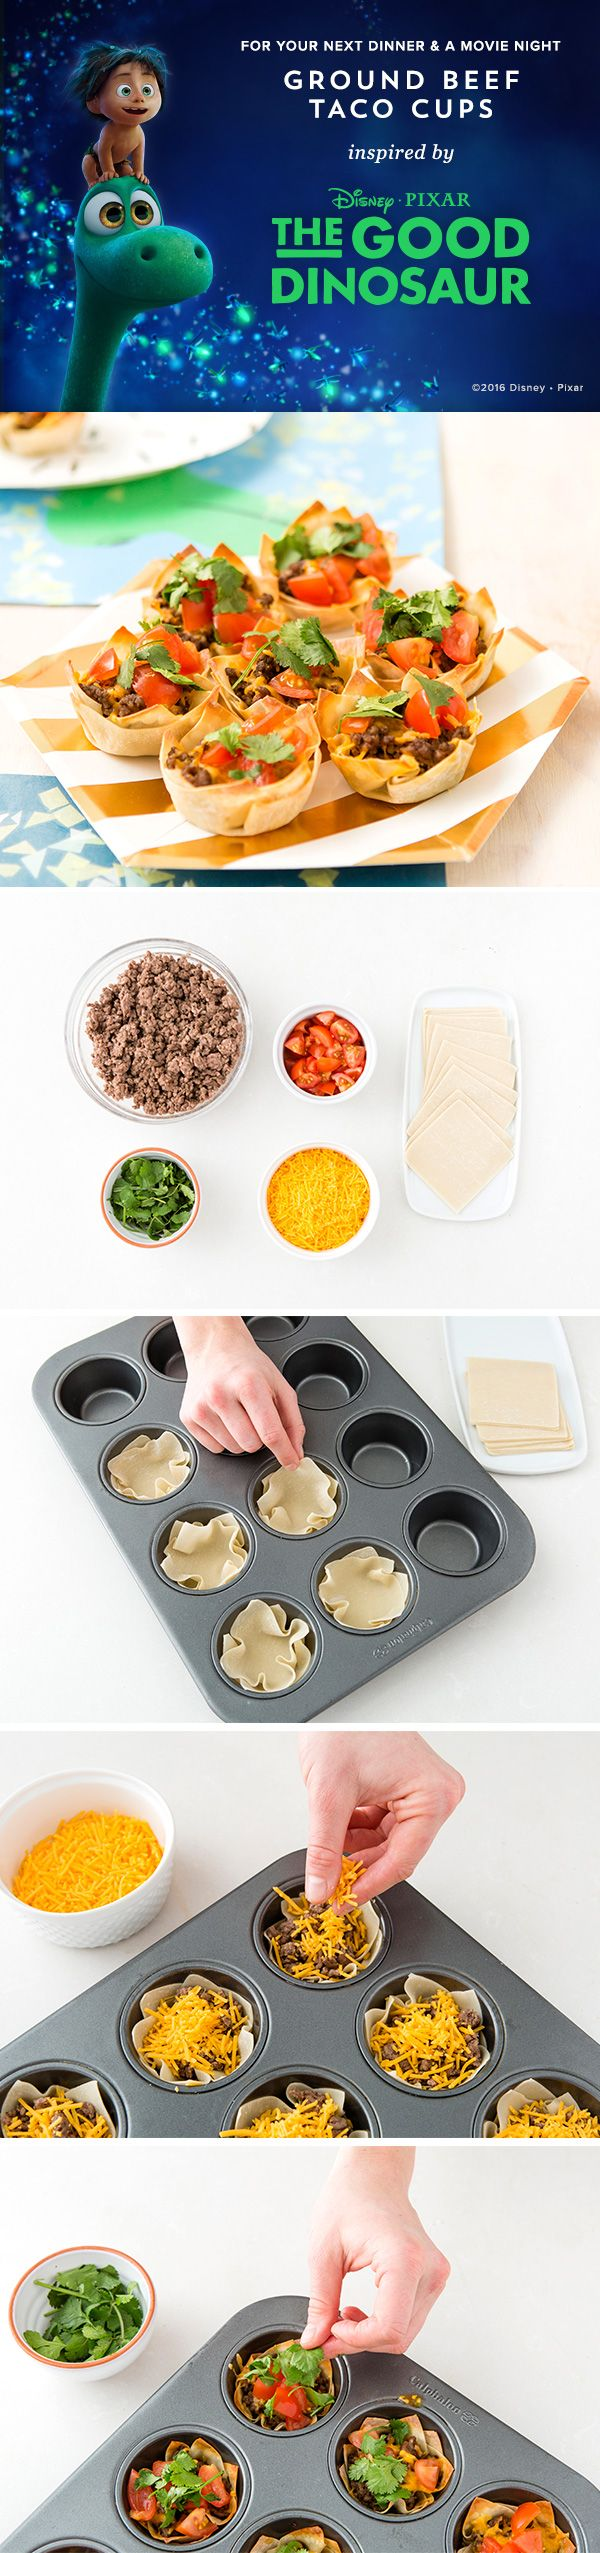 Have a dinner and movie night with your kids! Make scrumptious Ground Beef Taco Cups and watch Disney/Pixar's The Good Dinosaur. 1) Set your oven to 375 F. Add 2 wonton wrappers to each muffin tin. 2) Fill each tin with 2 TBSP of ground meat, then top with cheddar cheese. Bake in the oven for 12 minutes. 3) Once the tacos have slightly cooled, add the toppings of your choice. Enjoy!